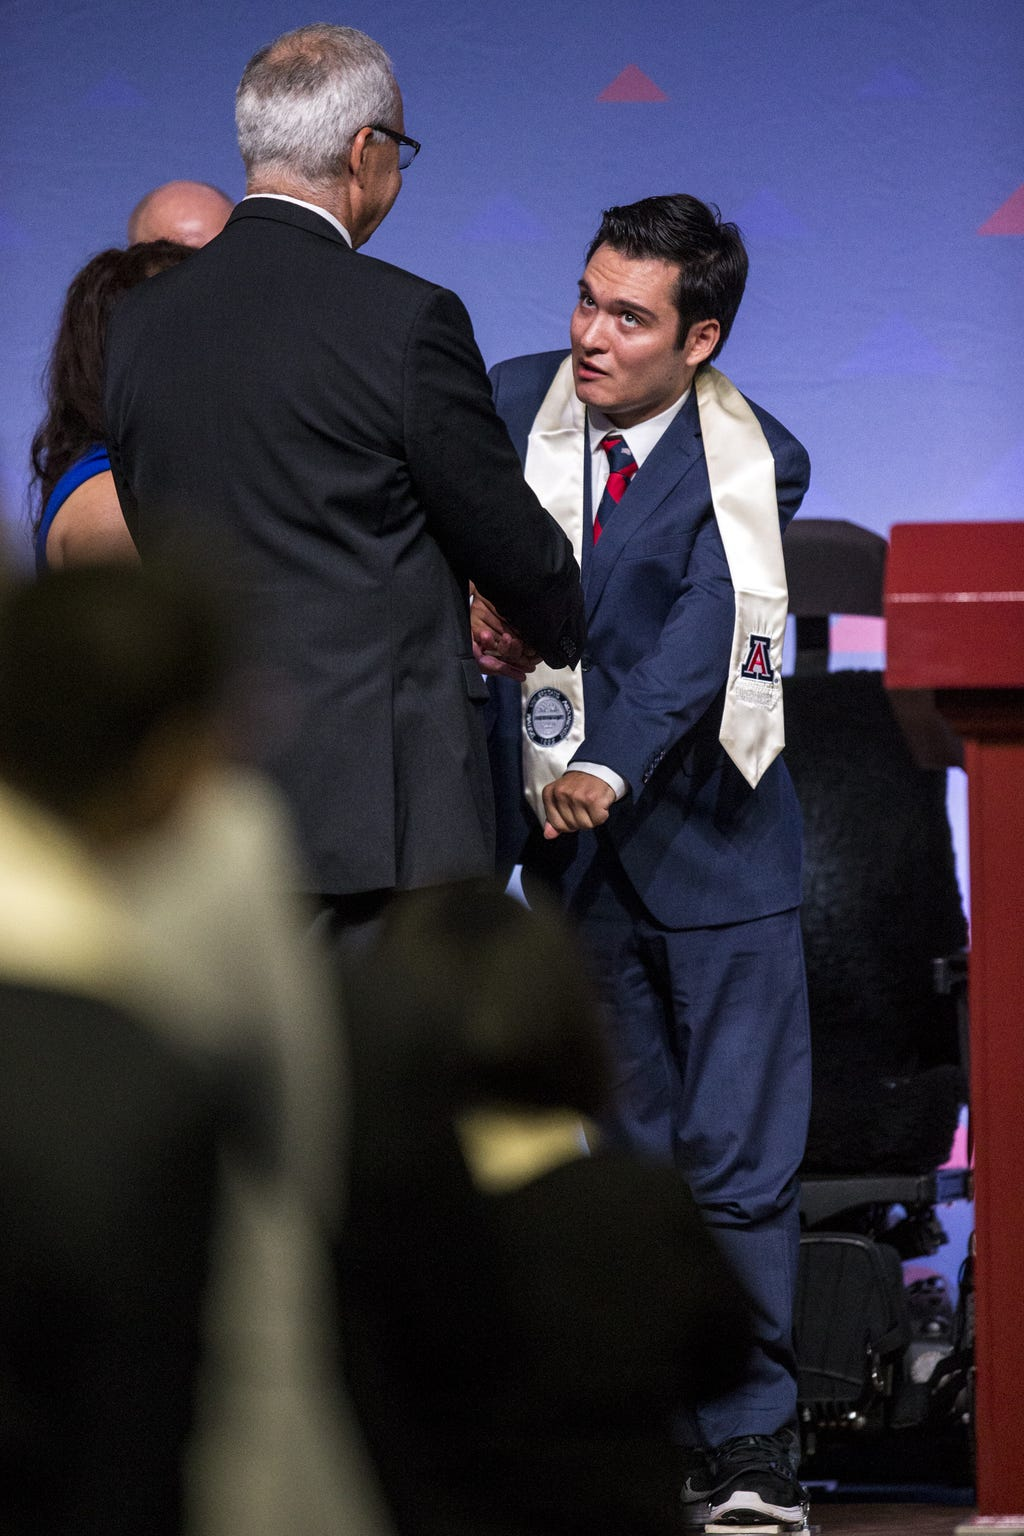 Jeffrey Bristol, 24, shakes hands with University of Arizona's Eller College of Management Dean Paulo Goes during convocation on Saturday, May 11, 2019, at McKale Memorial Center in Tucson, Ariz. Bristol, who was diagnosed with cavernous angioma as a child, has begun to learn how to walk with the help of an exoskeleton created as part of an engineering school design program.